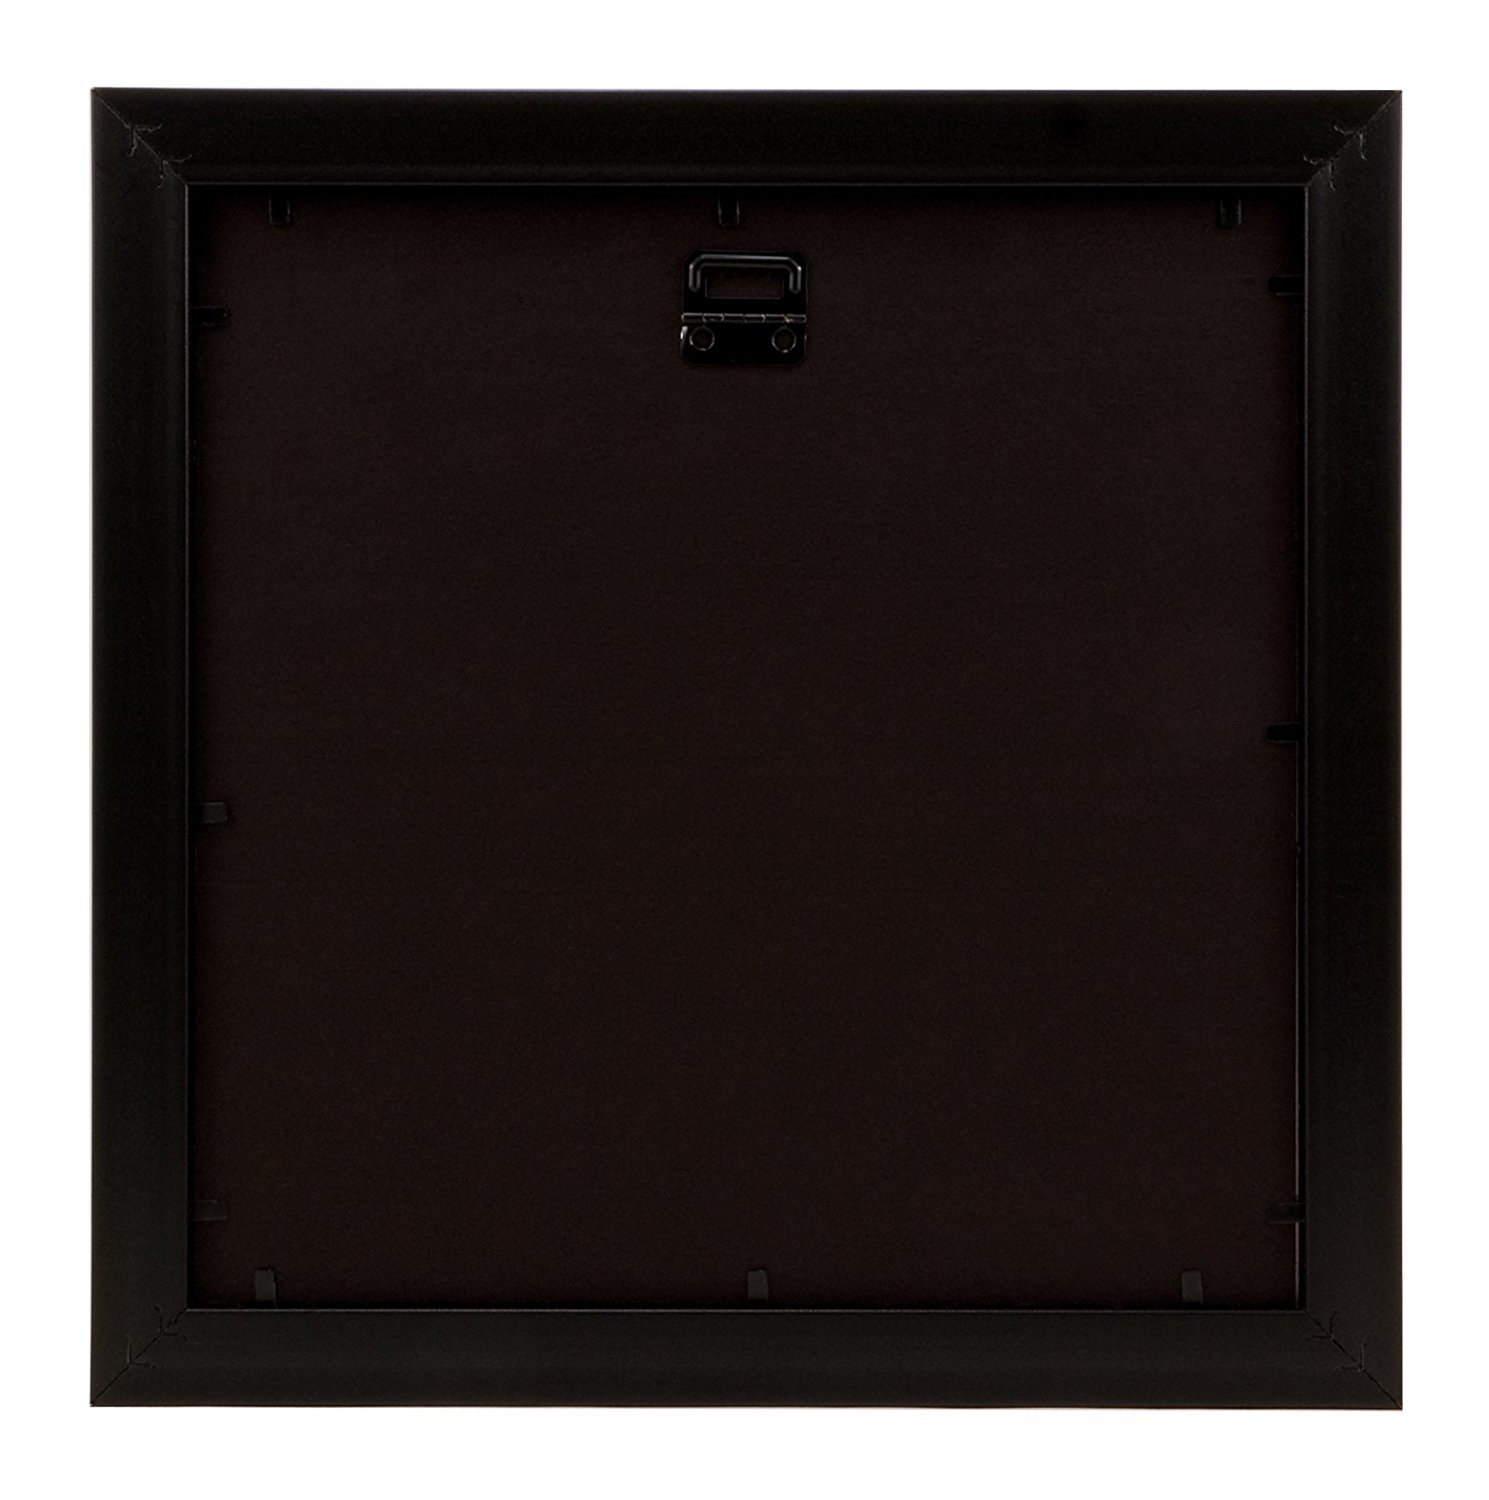 BorderTrends Nova 10x10//6x6-Inch Square Wall Frame Black with Black Mat